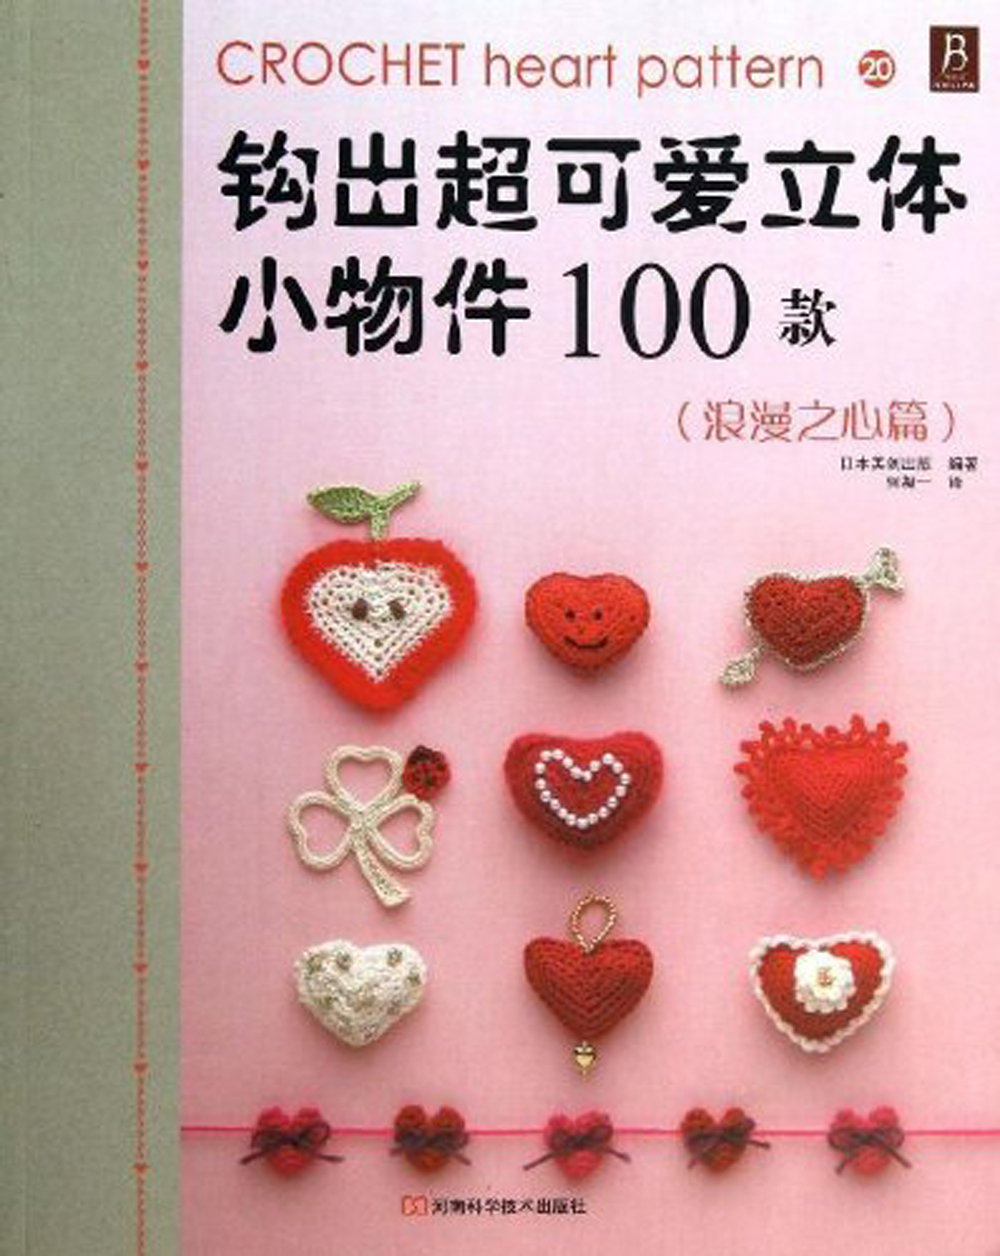 Crochet Heart Pattern / Weaving super-cute 3d small objects 100 models Chinese knitting book / Japanese Handmade Carft Book 100 super cute little embroidery chinese embroidery handmade art design book